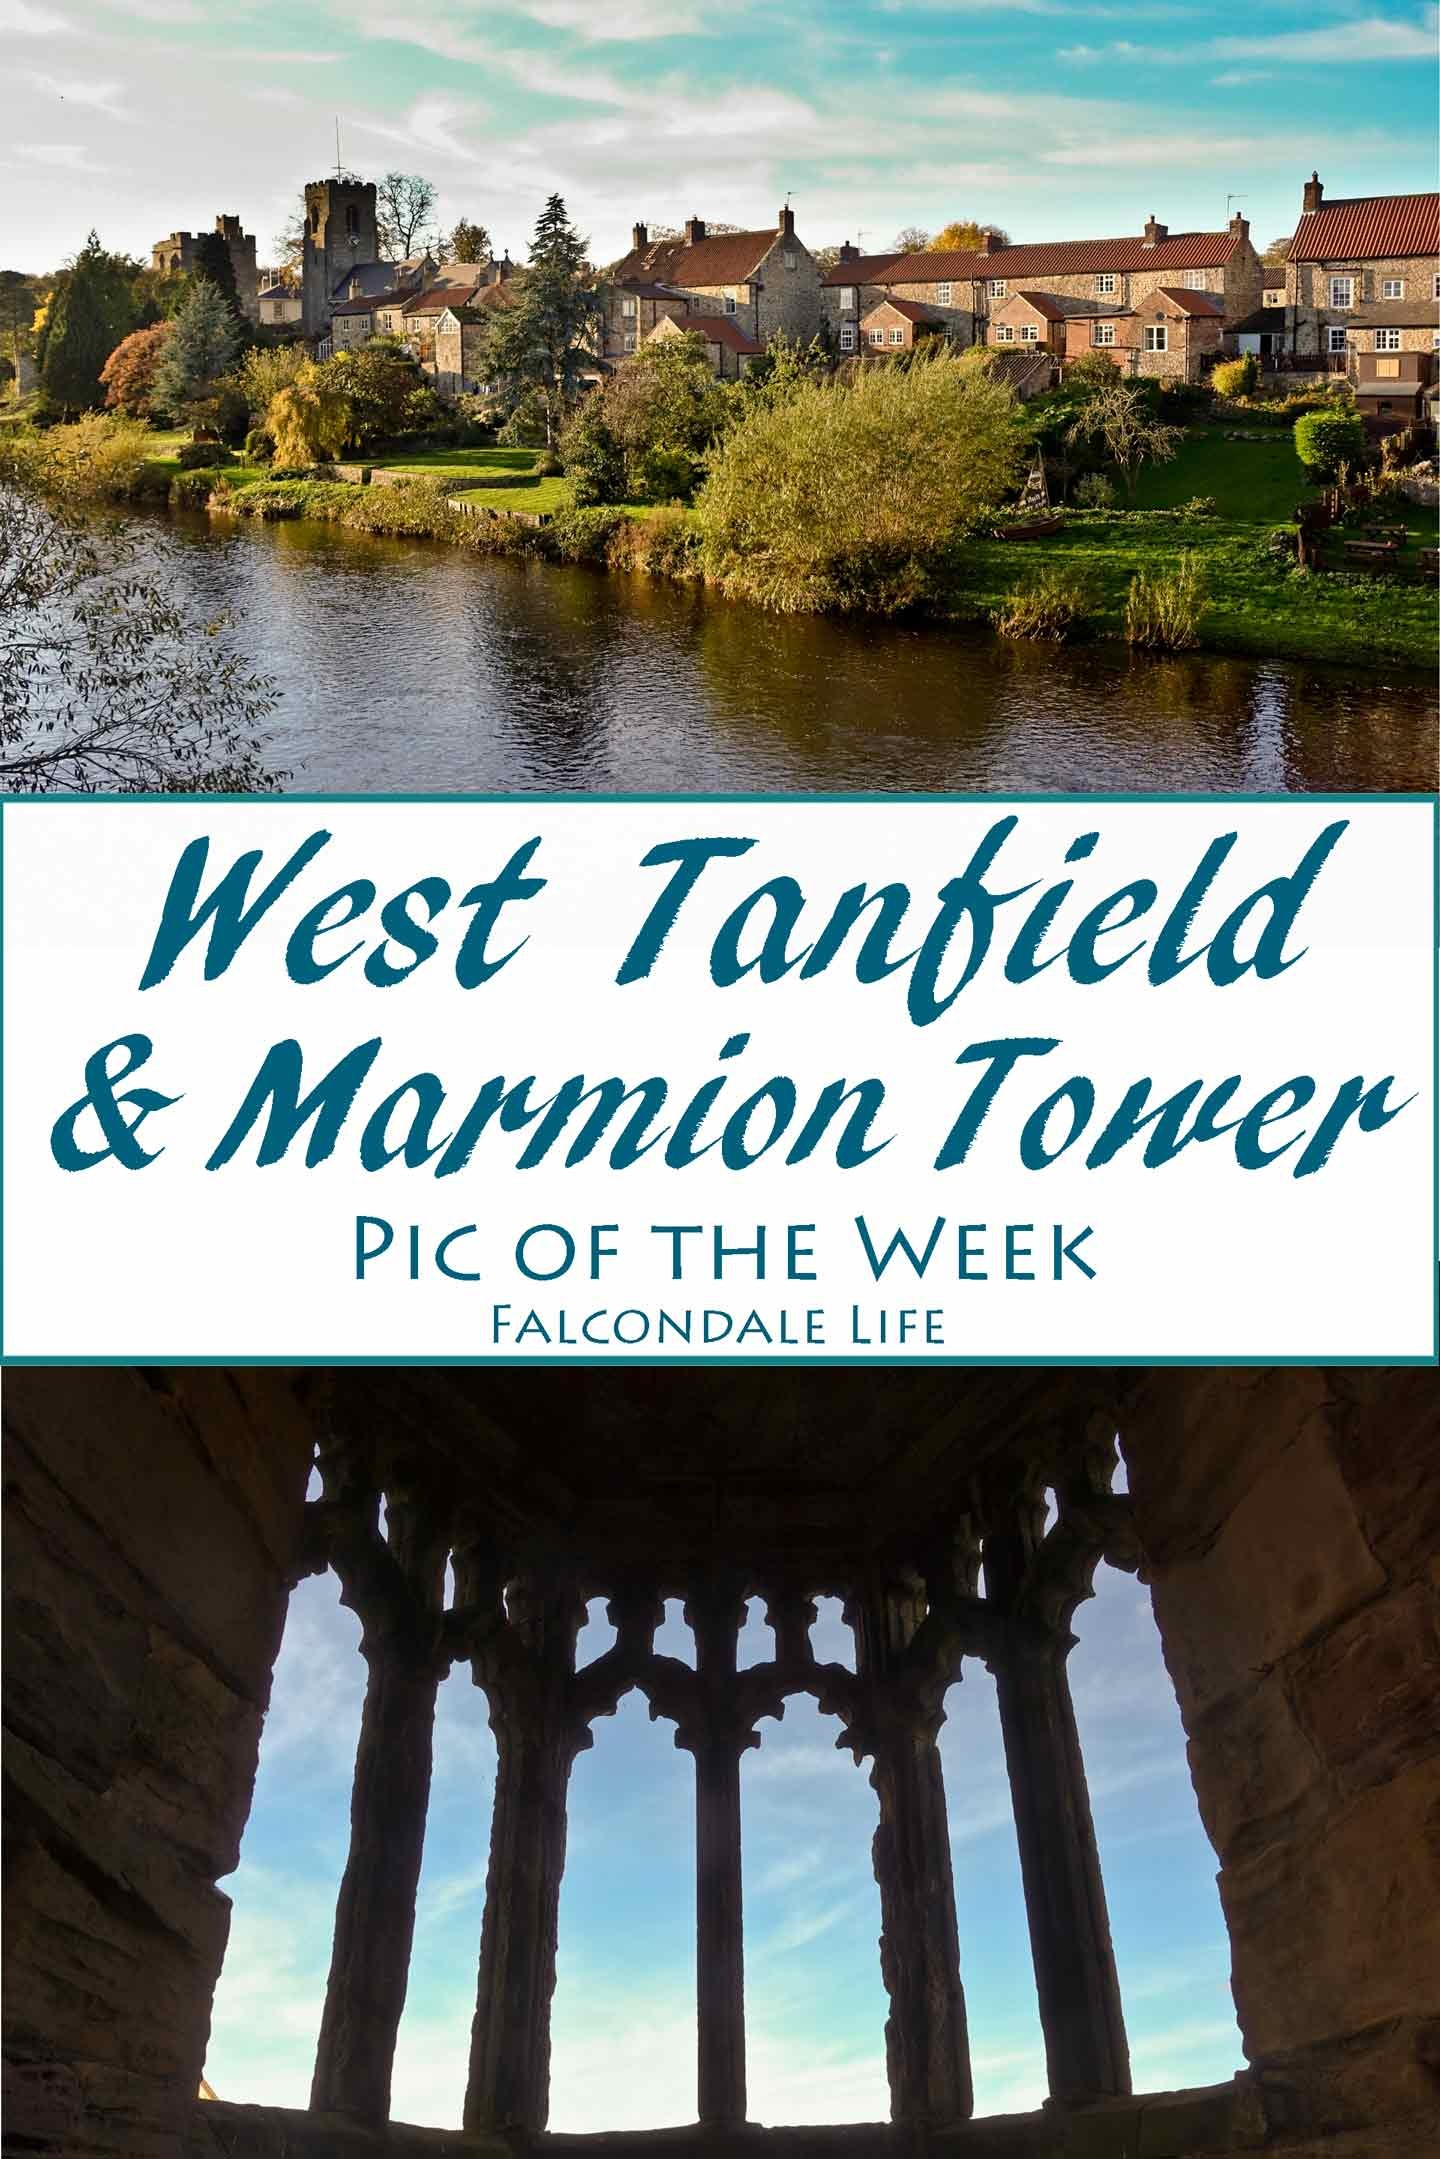 Pic of the Week – West Tanfield